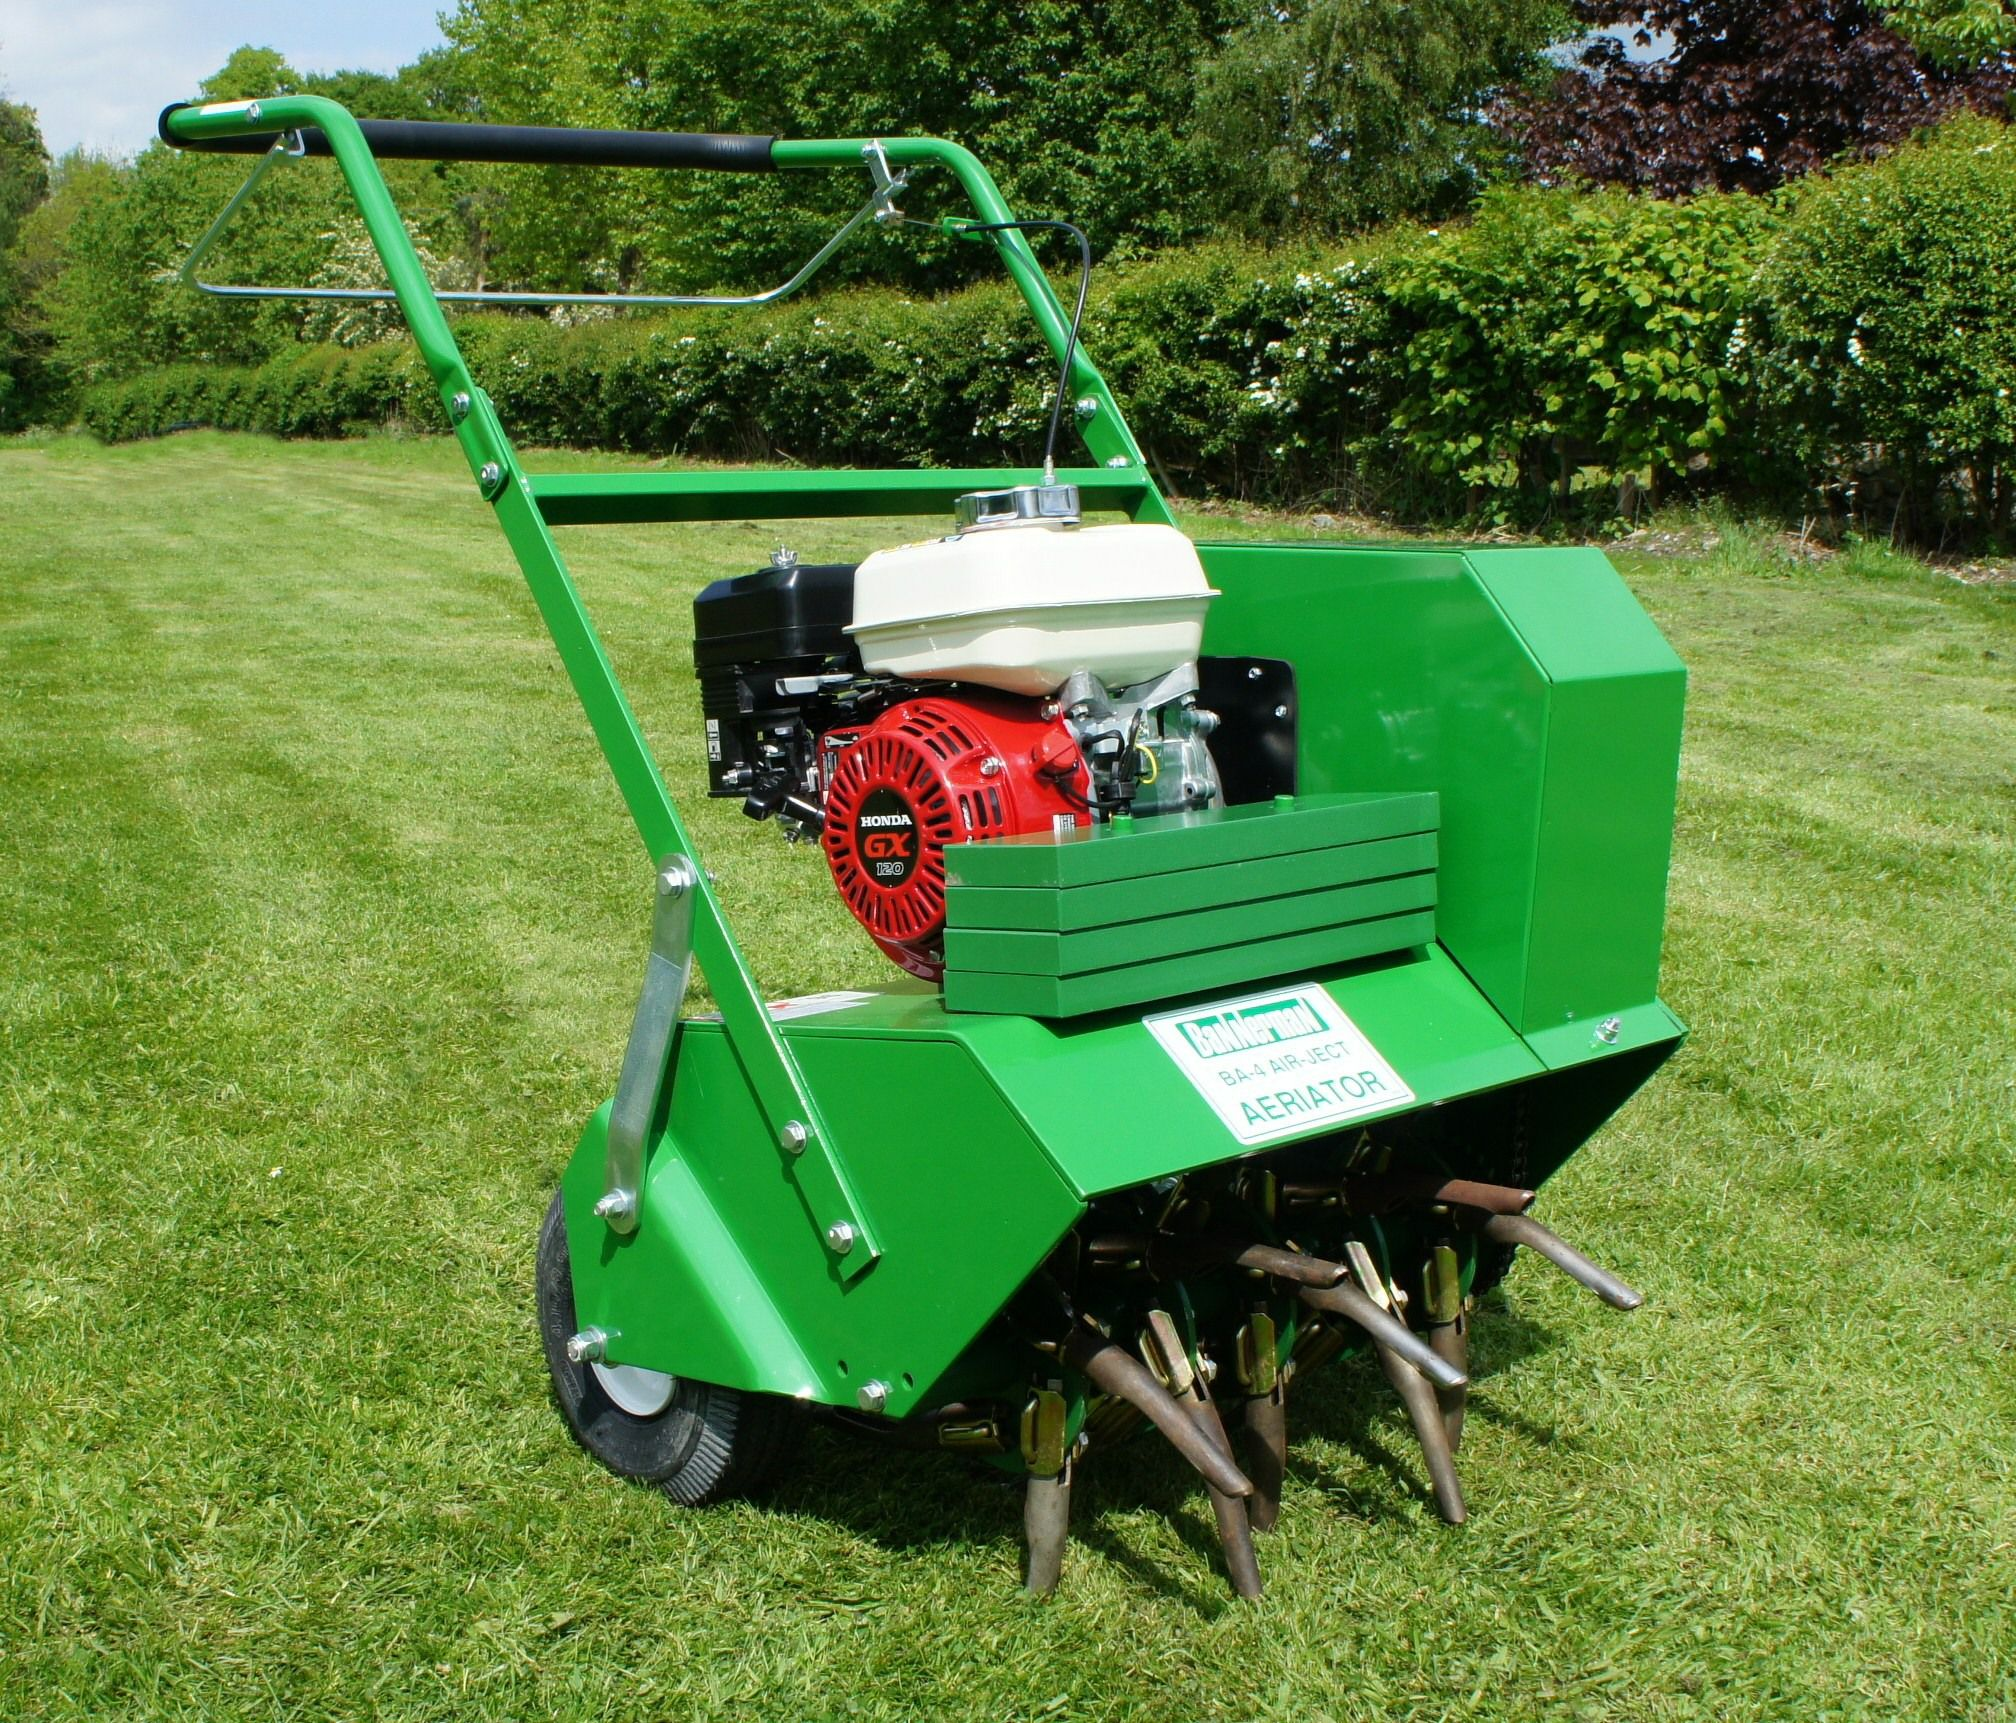 TOOL AND EQUIPMENT RENTAL Services In USA #Lawn U0026 Garden #Equipment Related  Companies Of